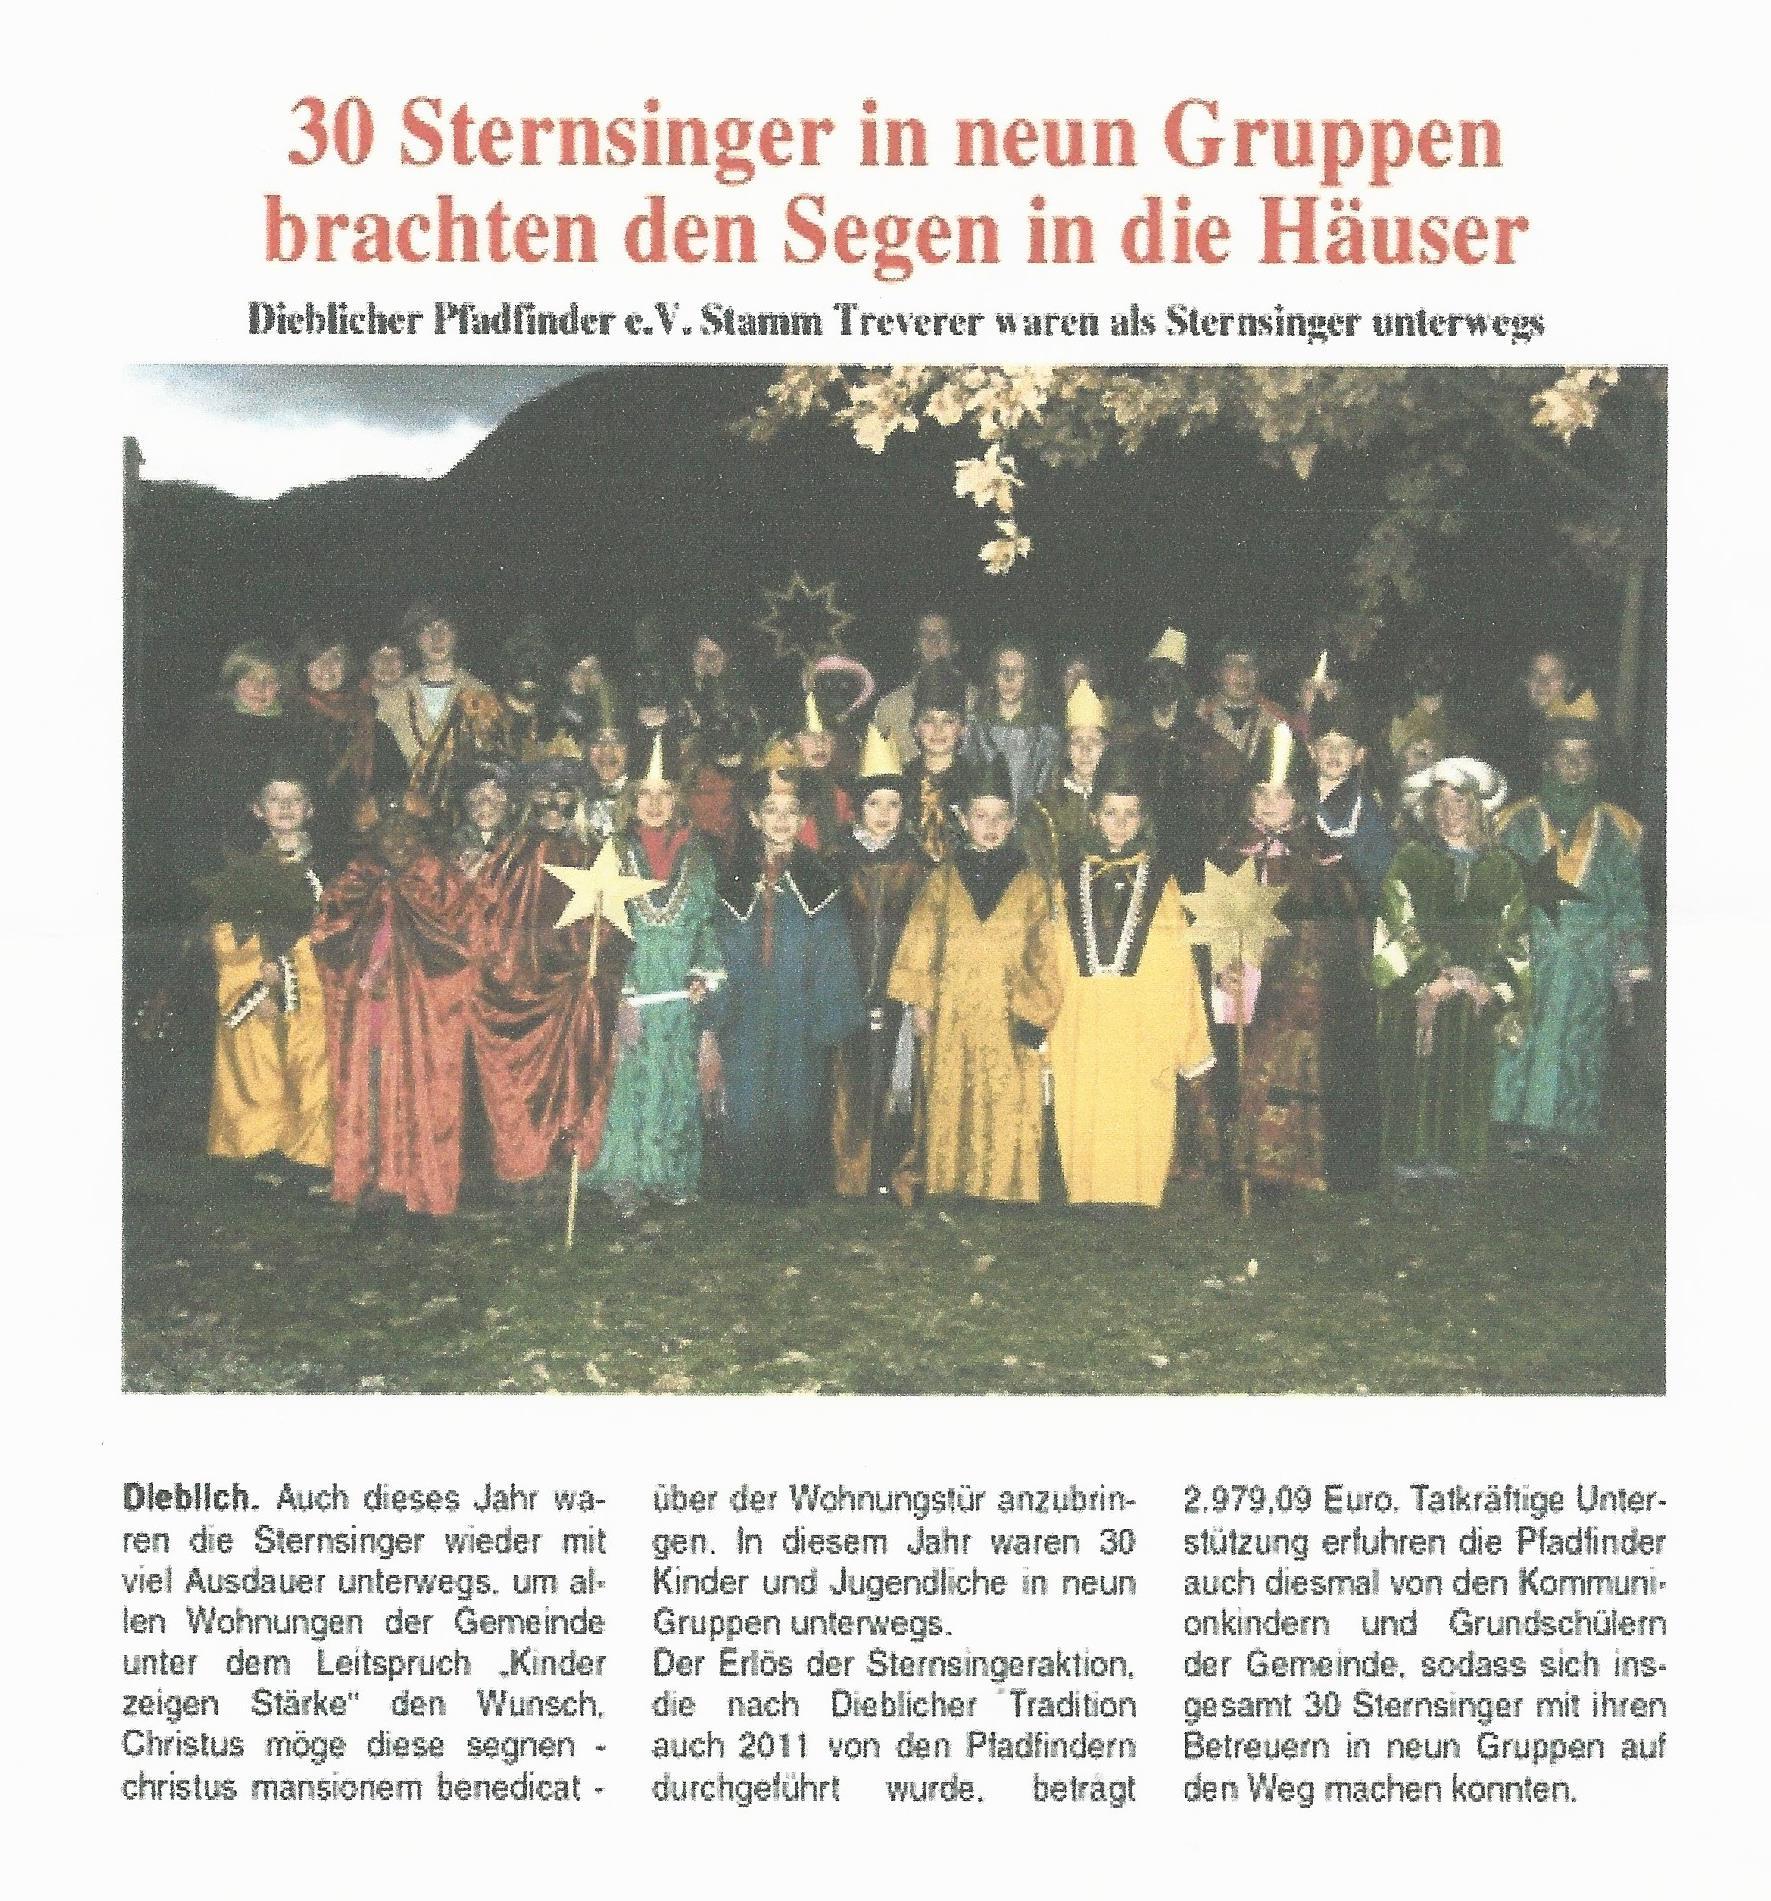 Sternsingeraktion 2011